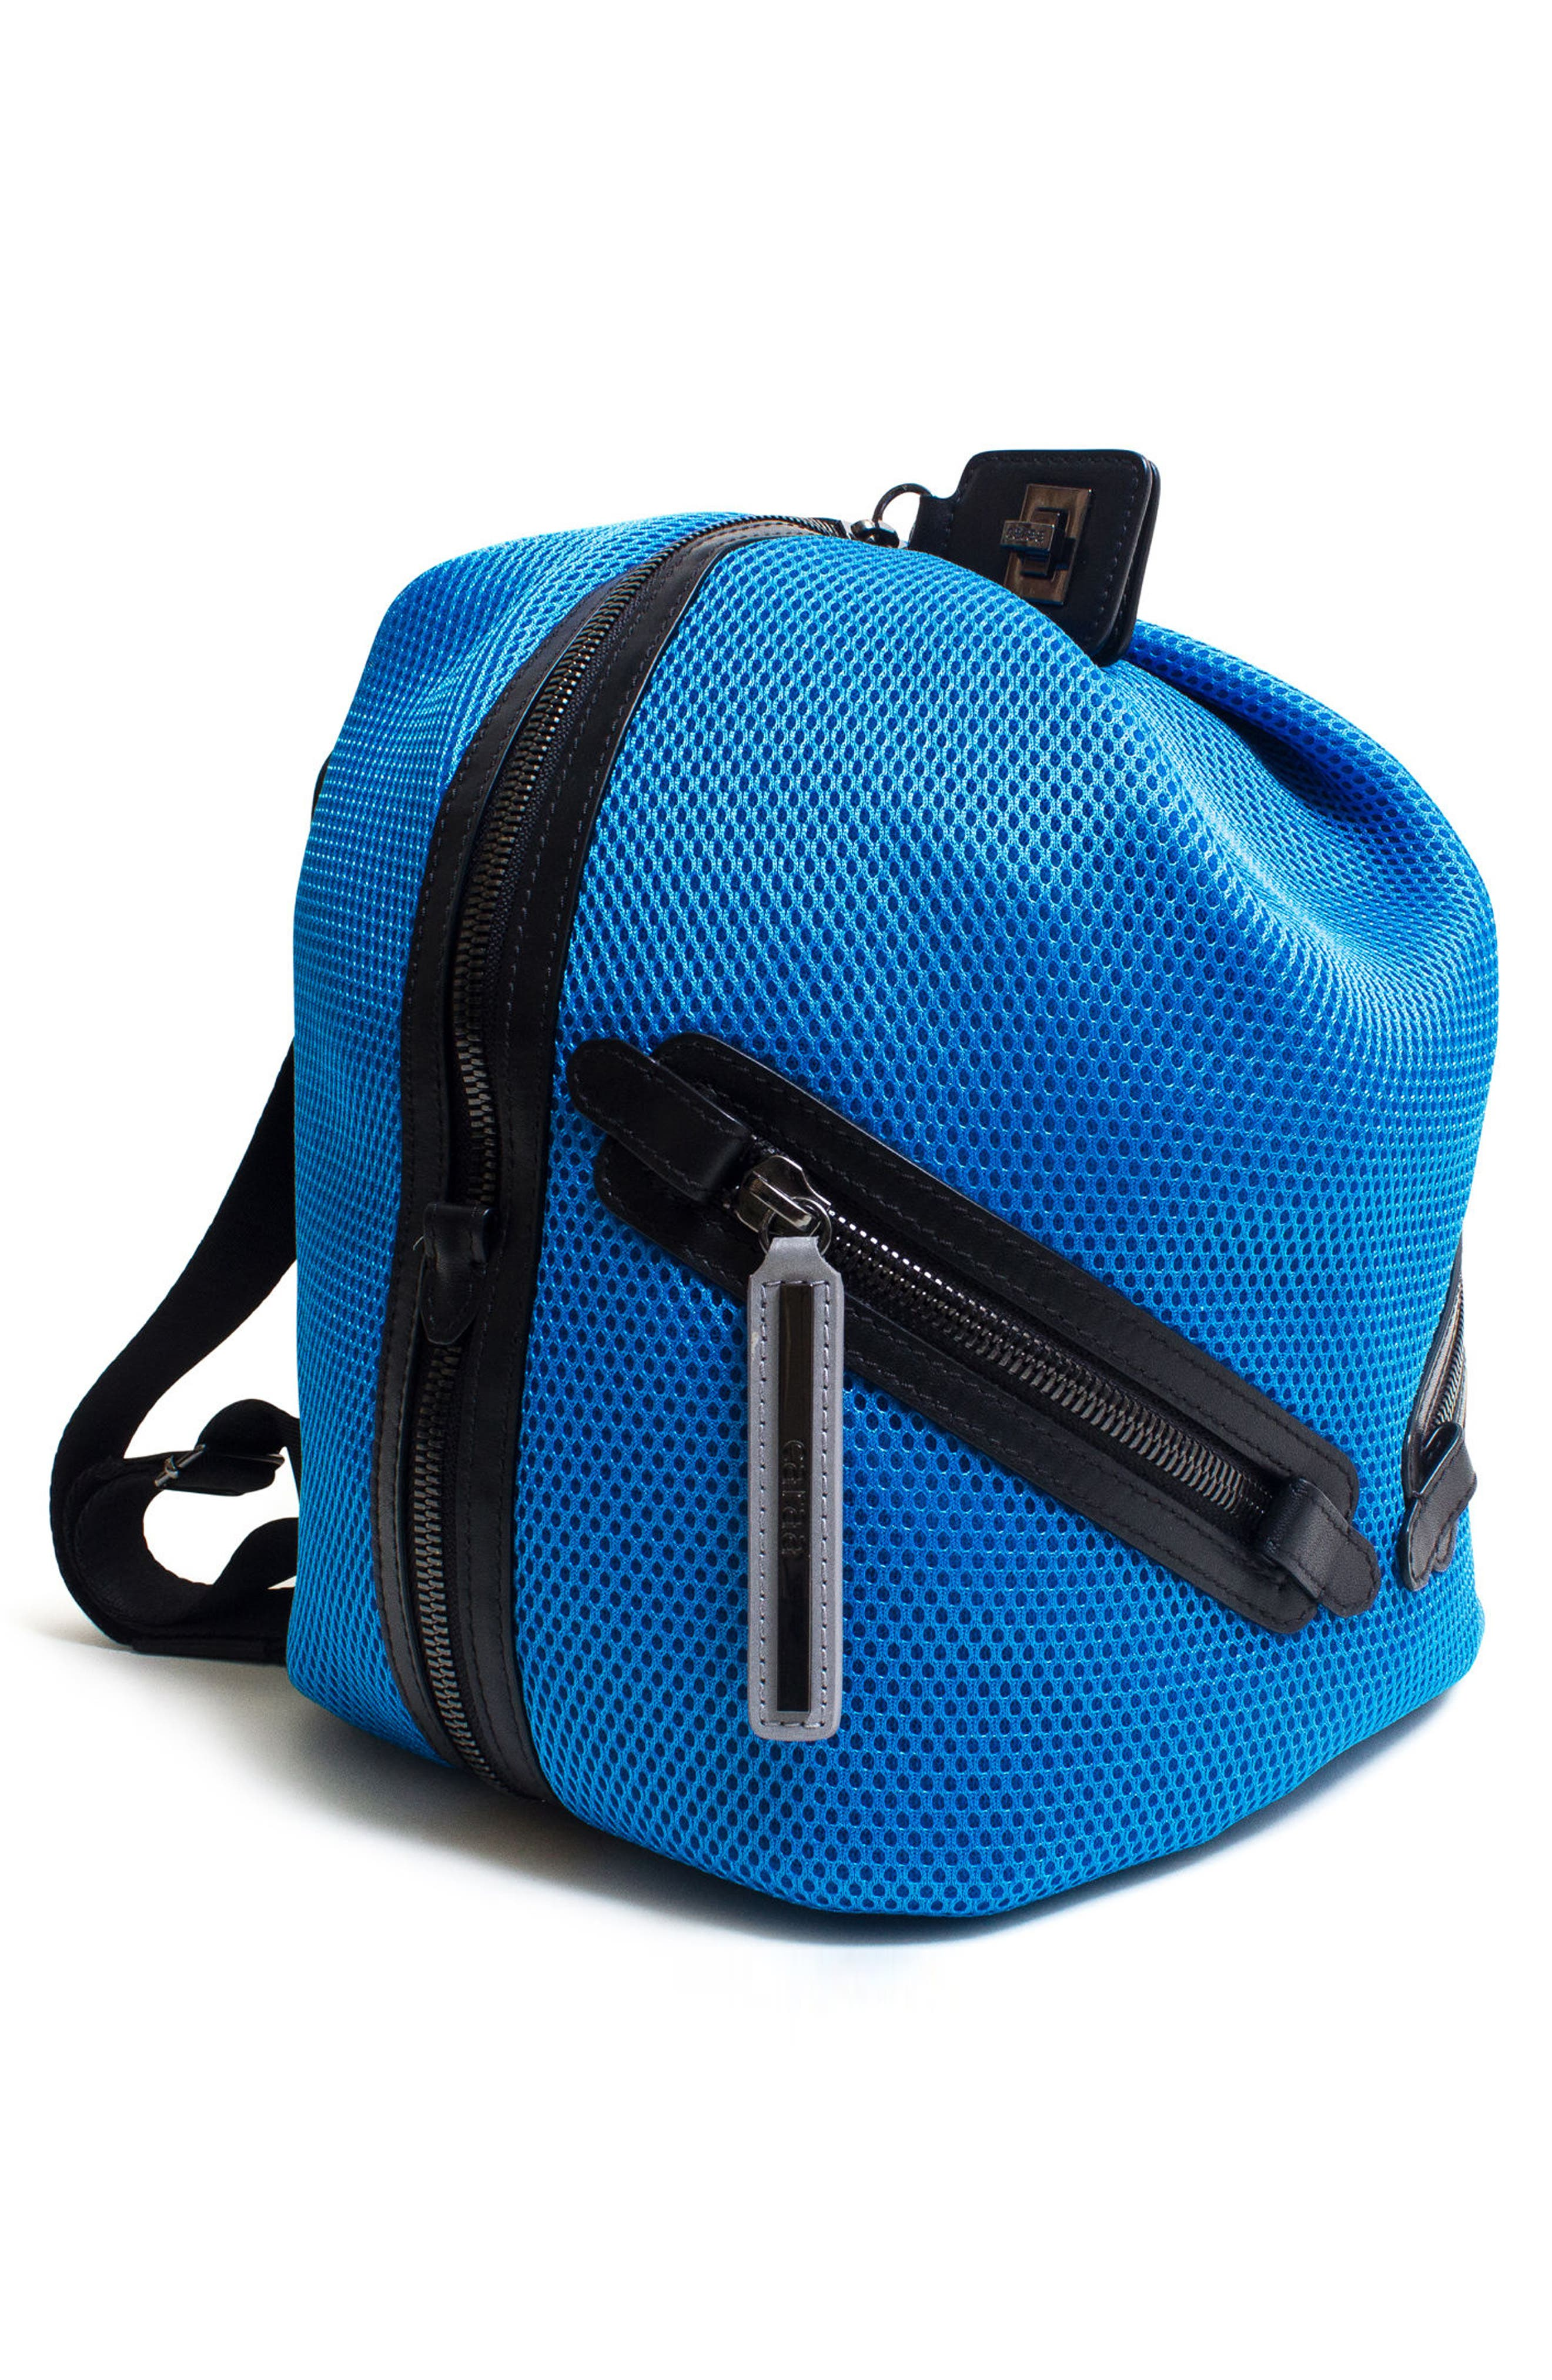 Dance 2 Mesh with Leather Trim Backpack,                             Alternate thumbnail 8, color,